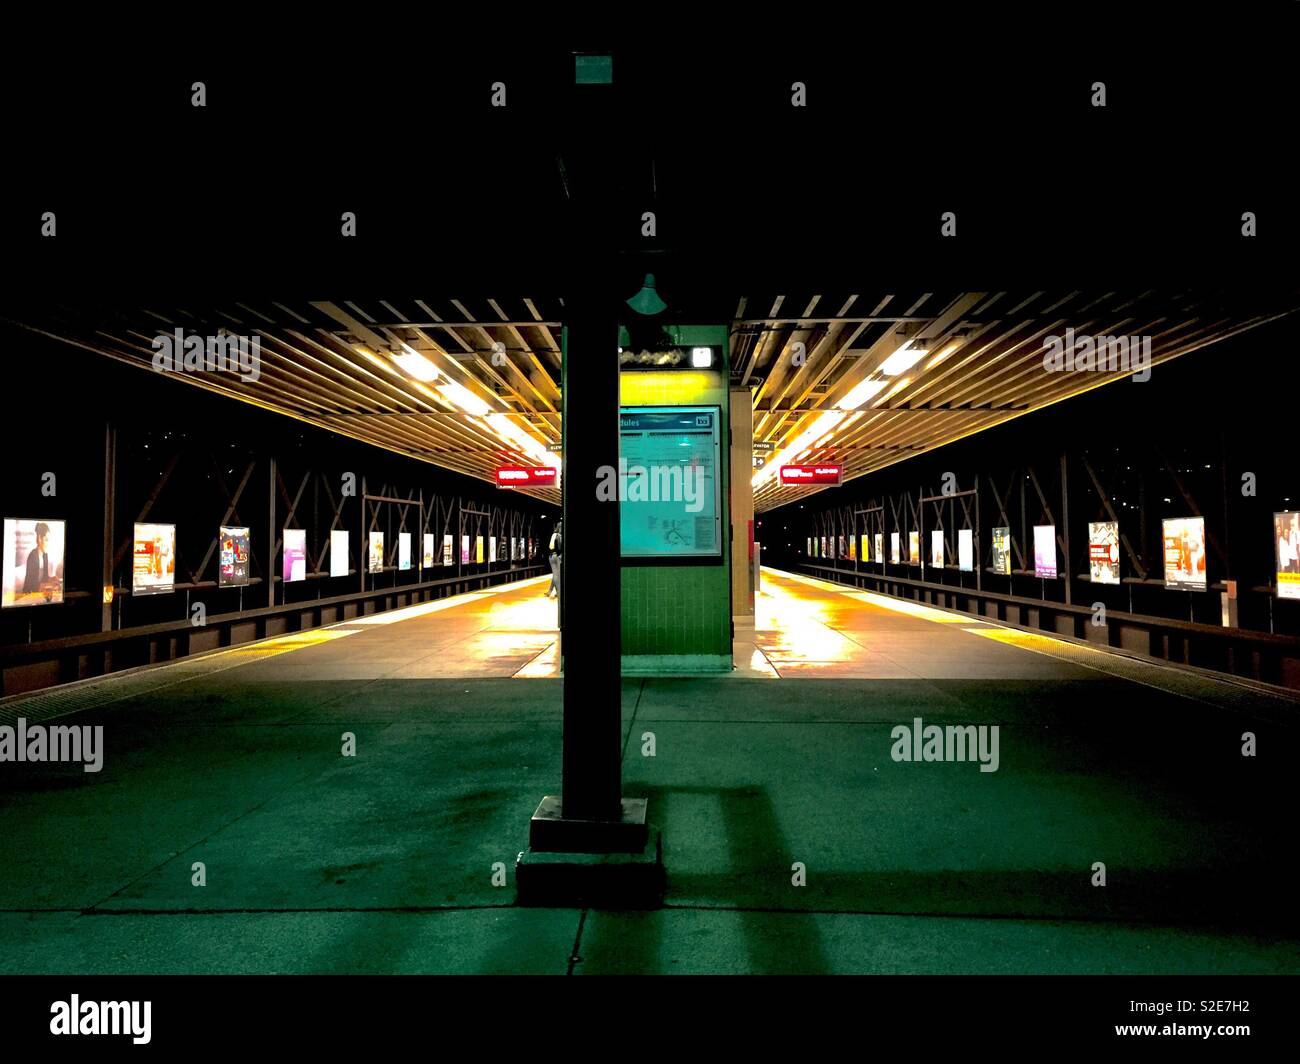 Rockridge BART station, Oakland, California - Stock Image